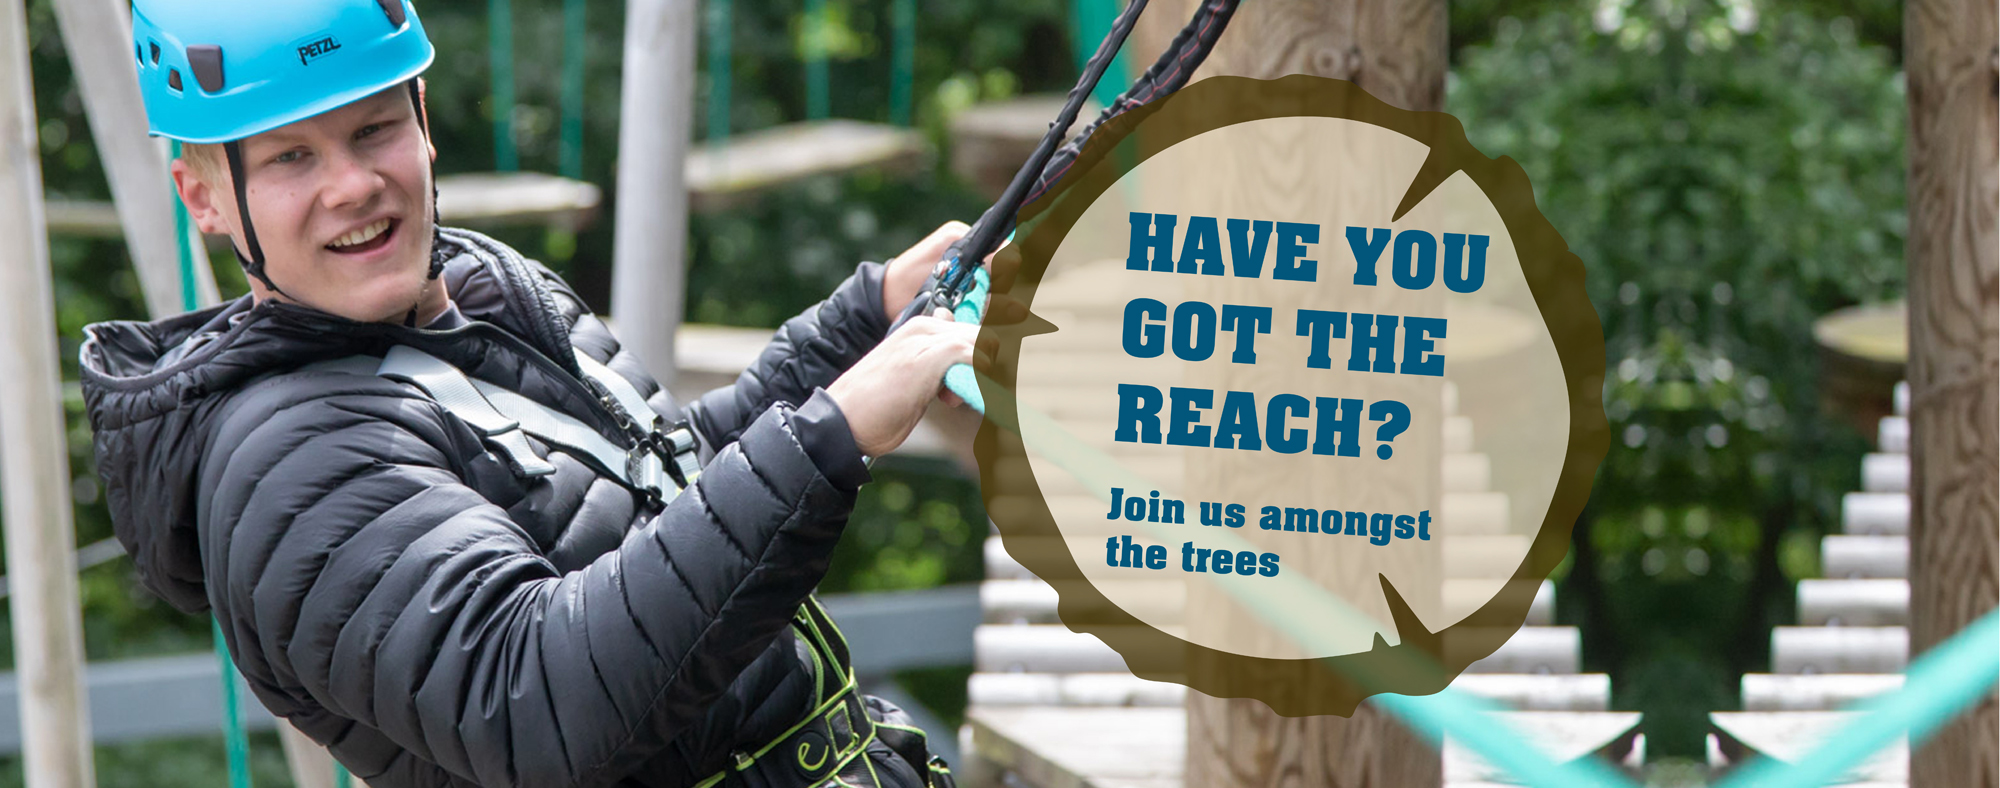 Have you got the reach?